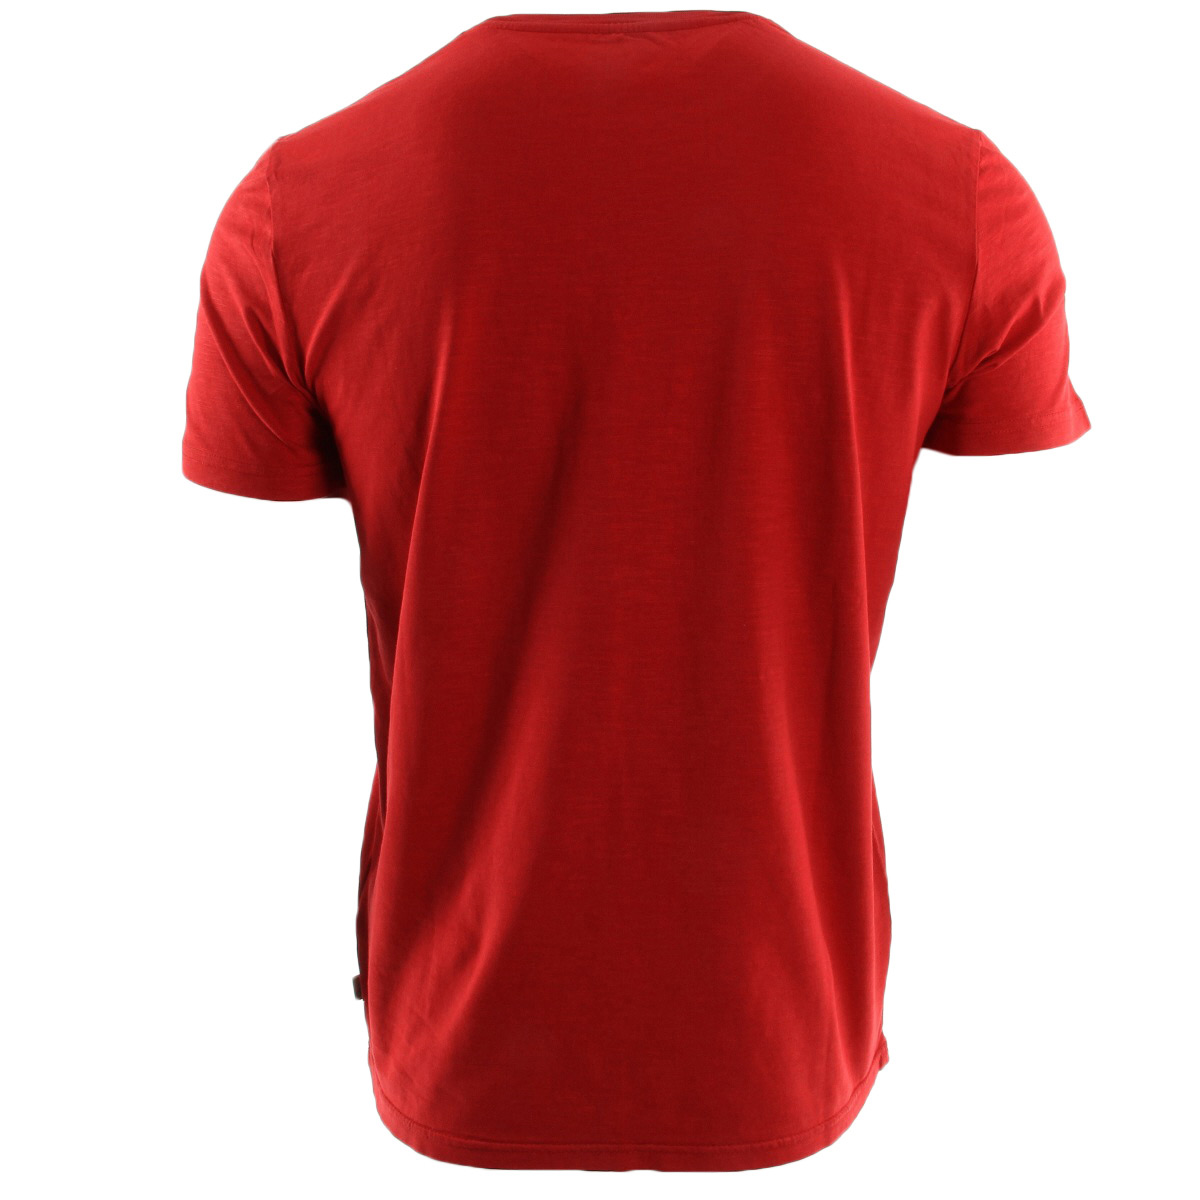 timberland tee shirt rouge a1686625 t shirts homme. Black Bedroom Furniture Sets. Home Design Ideas